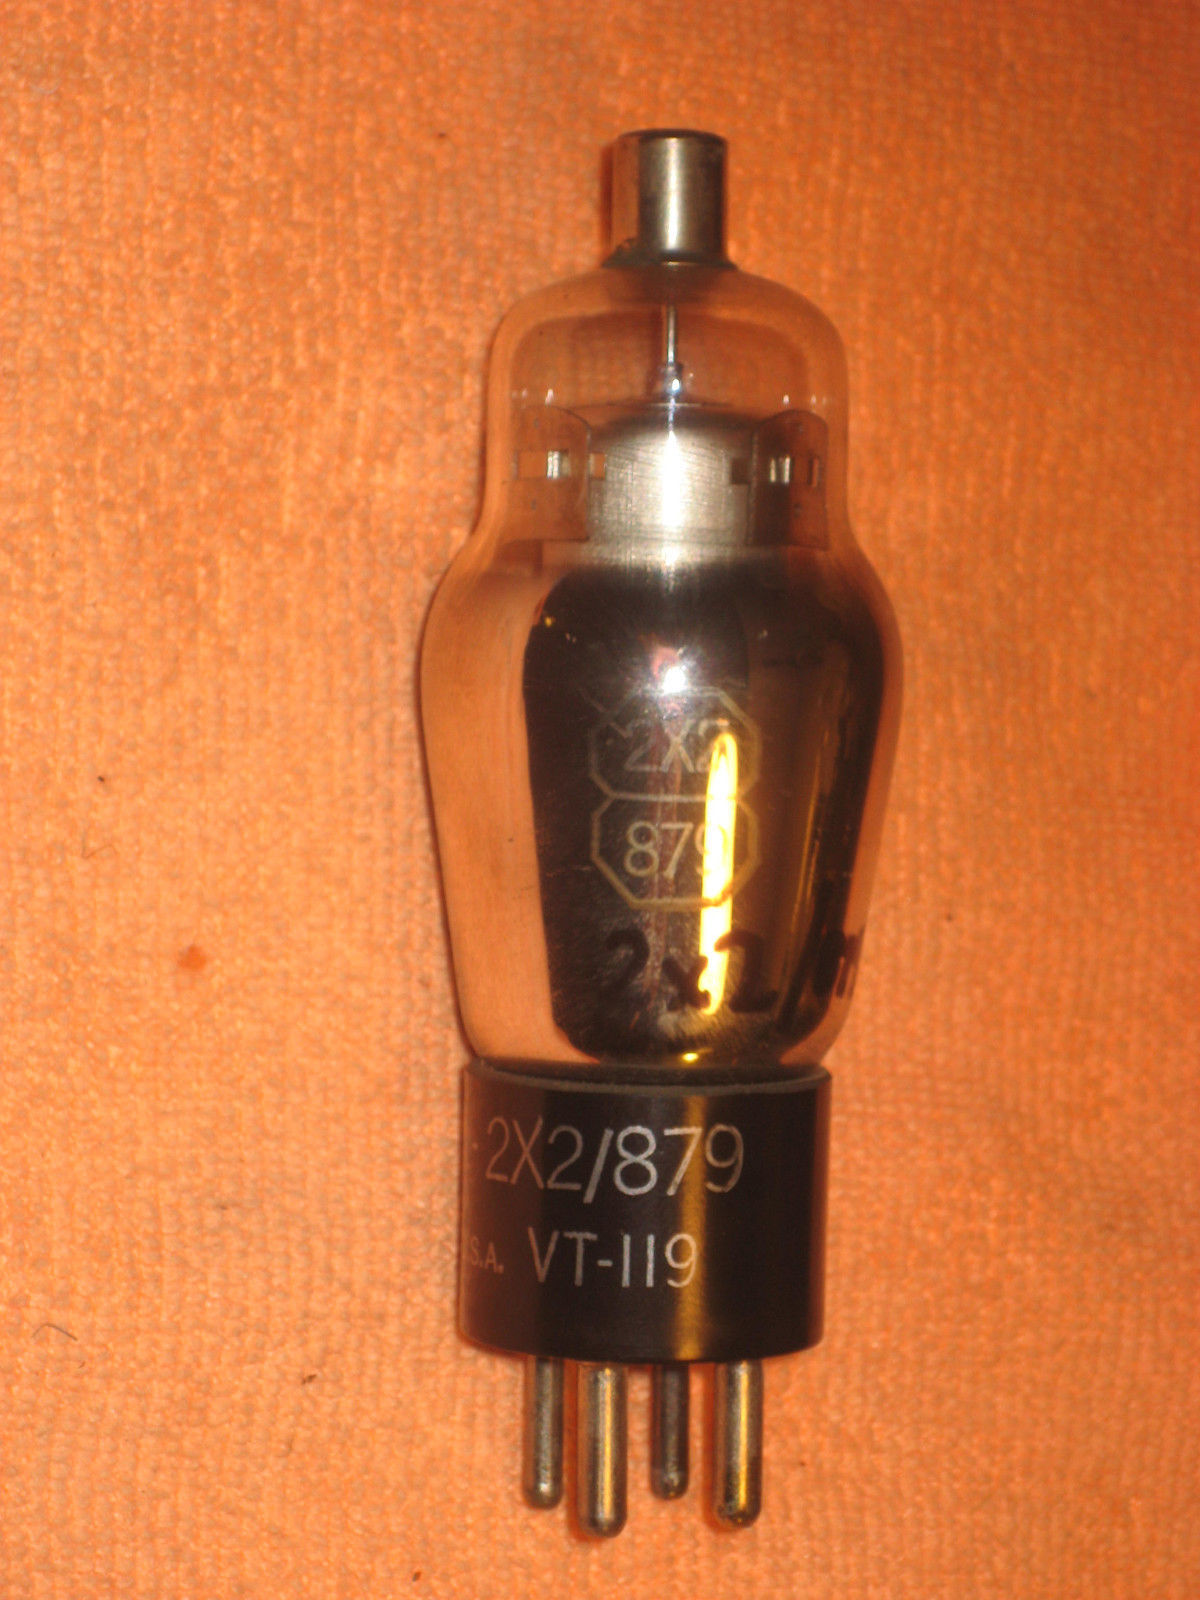 Vintage Radio Vacuum Tube (one): 2X2 / 879 - Tested Good